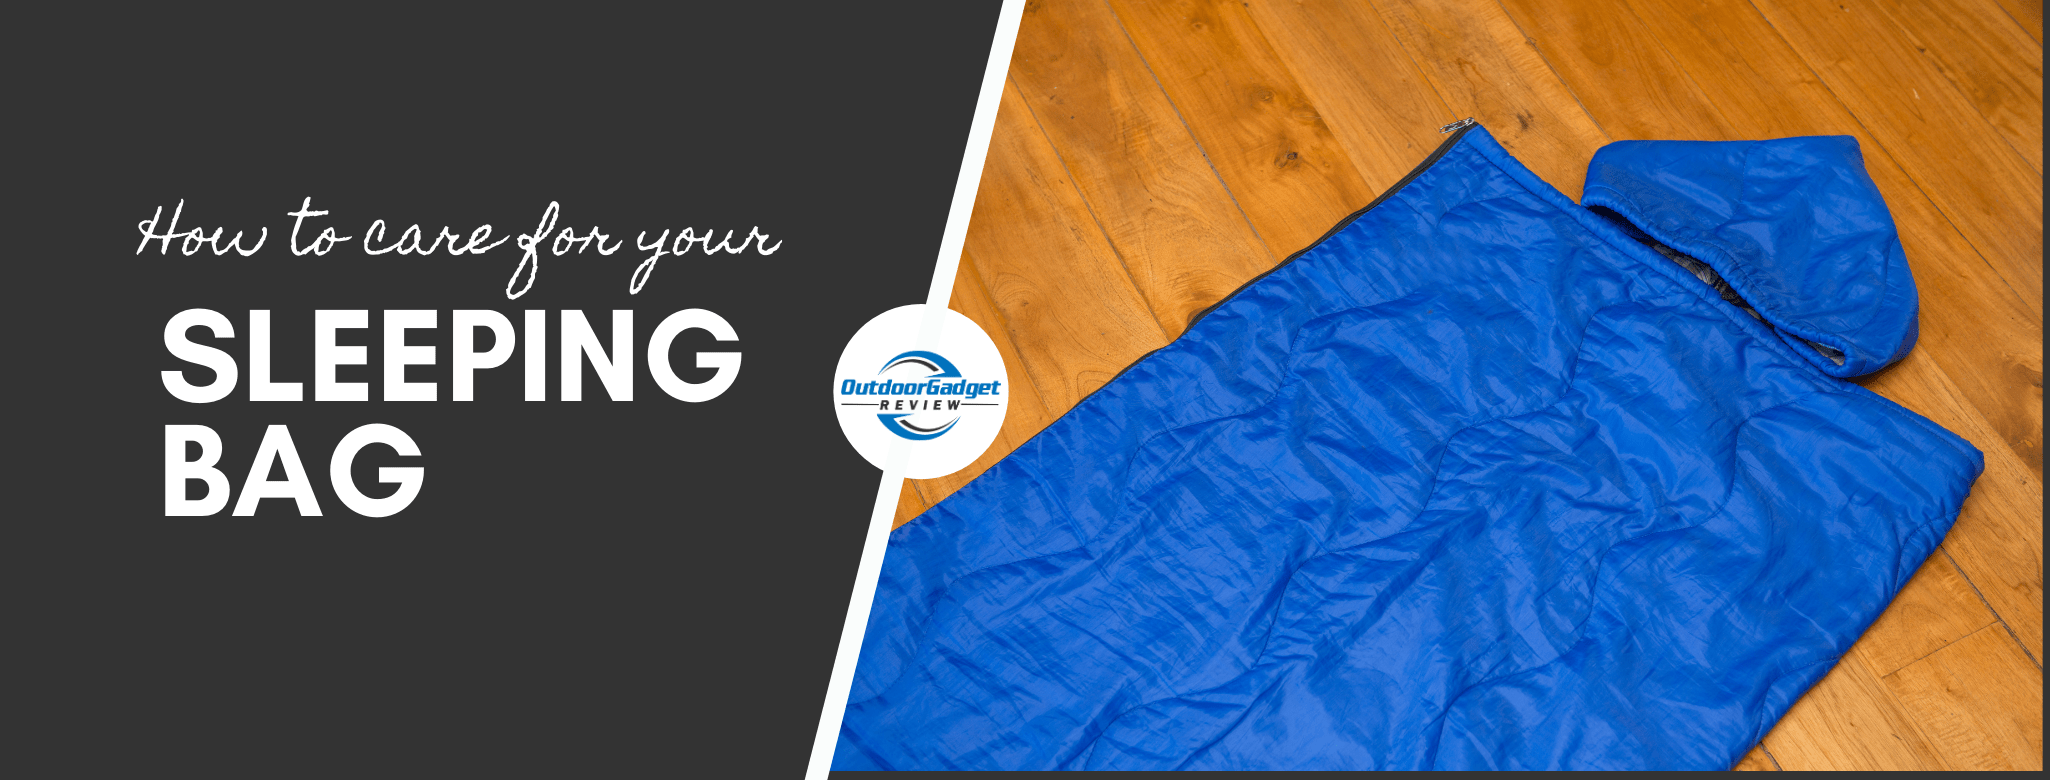 How to care for your sleeping bag